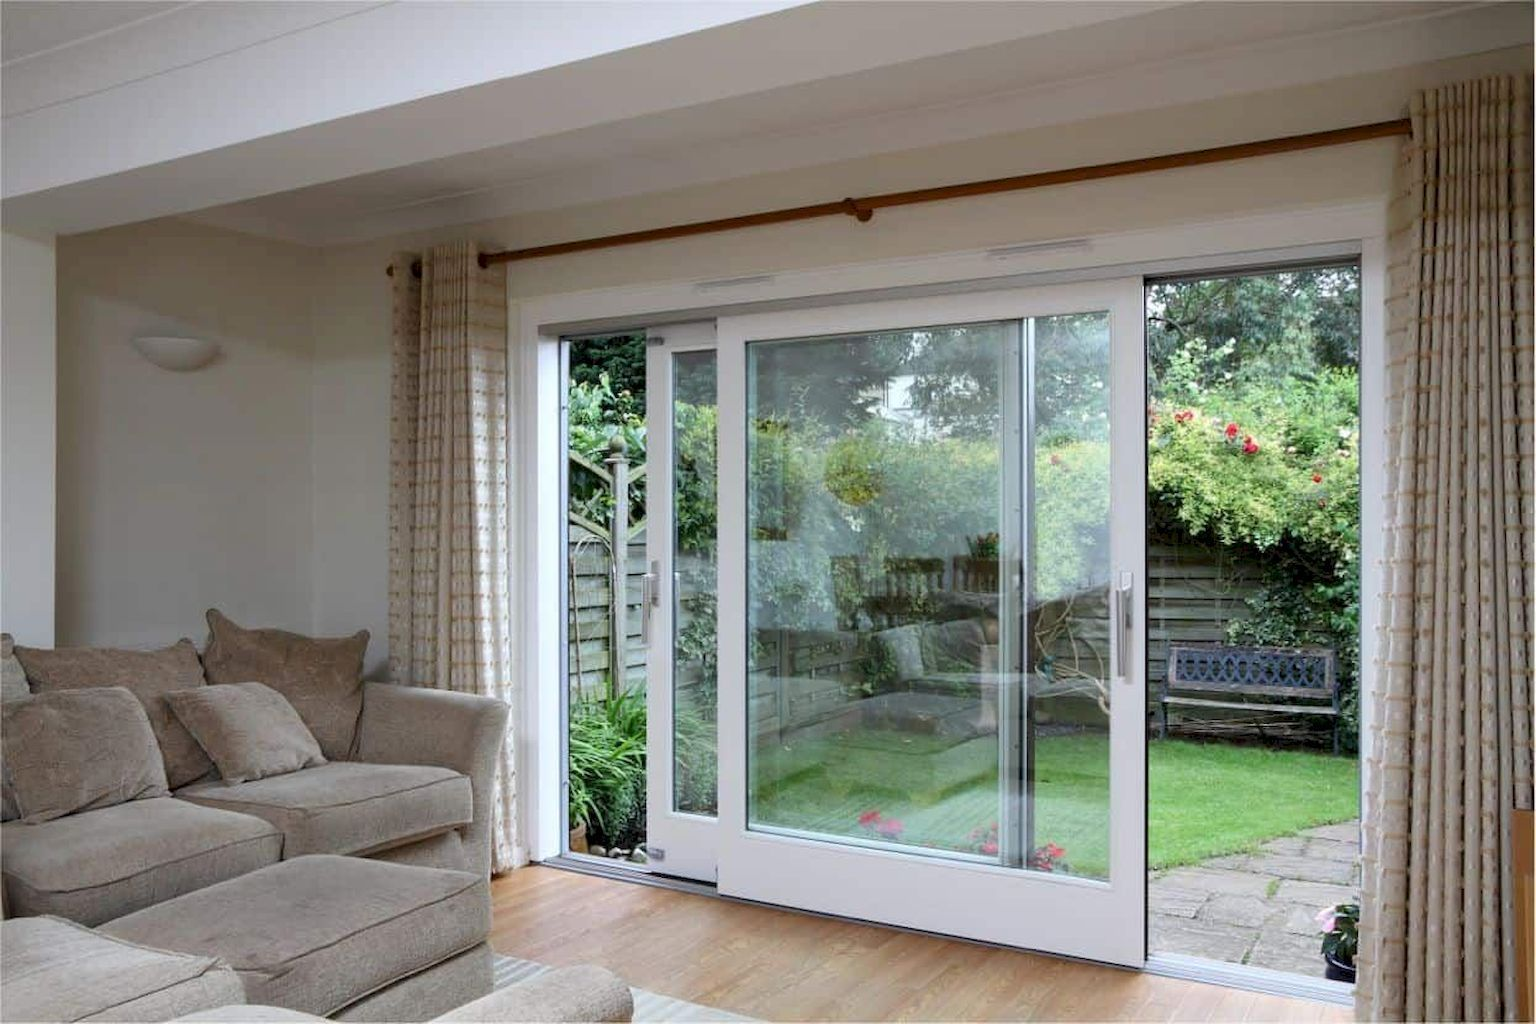 Sliding Doors Idea for Patio Areas - jihanshanum | Glass doors patio,  Sliding glass doors patio, Sliding doors exterior